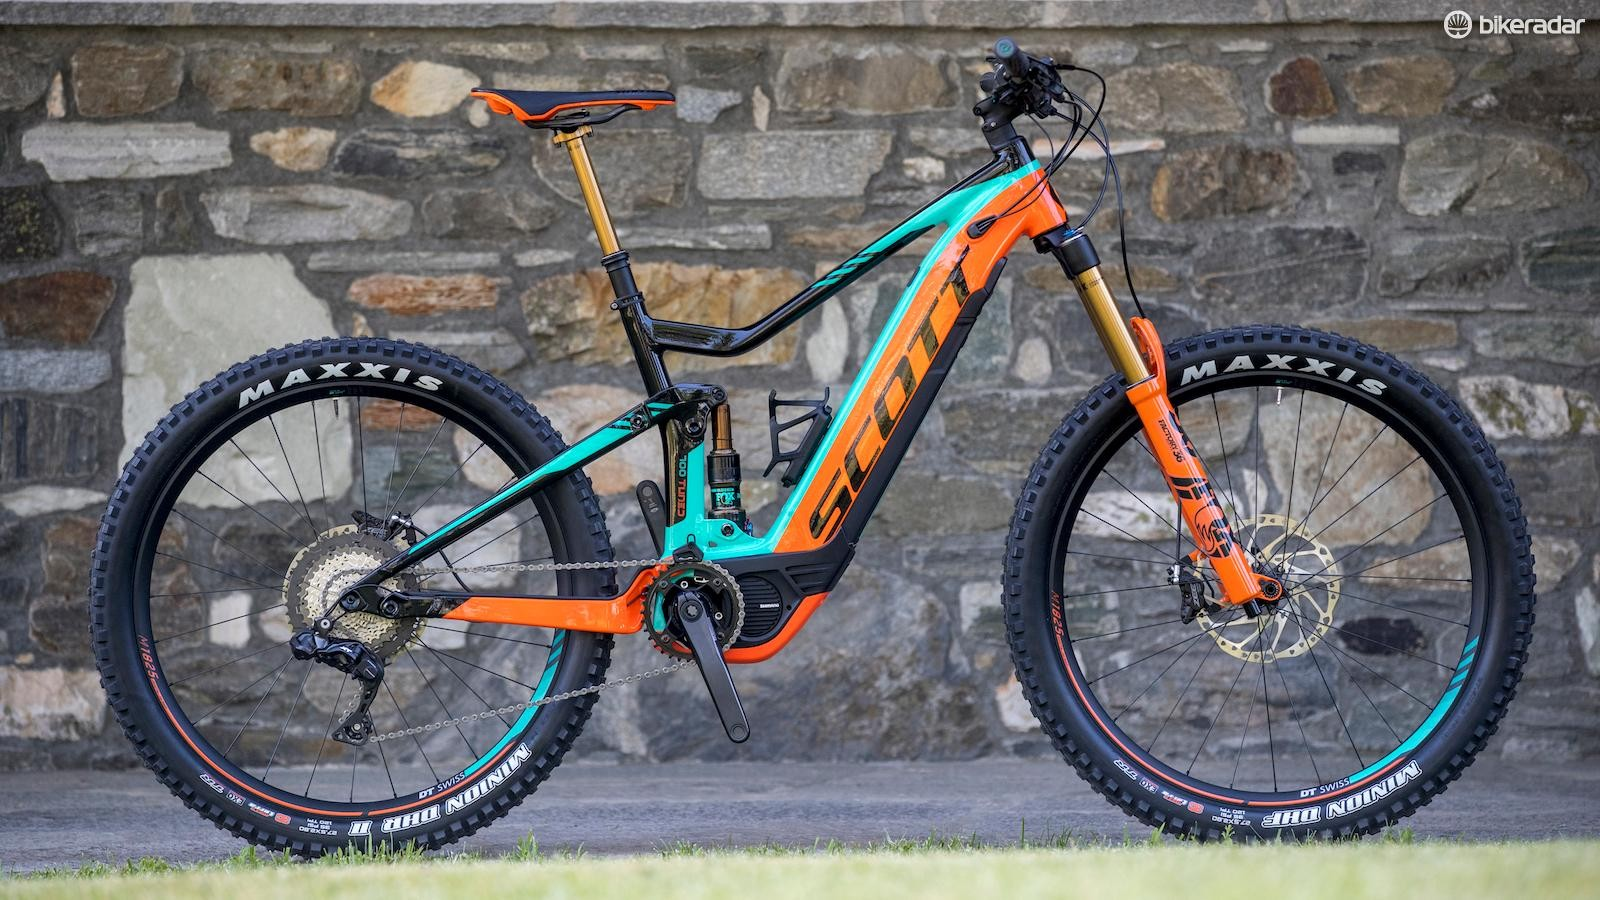 Scott's brand new E-Genius is a seriously capable bike